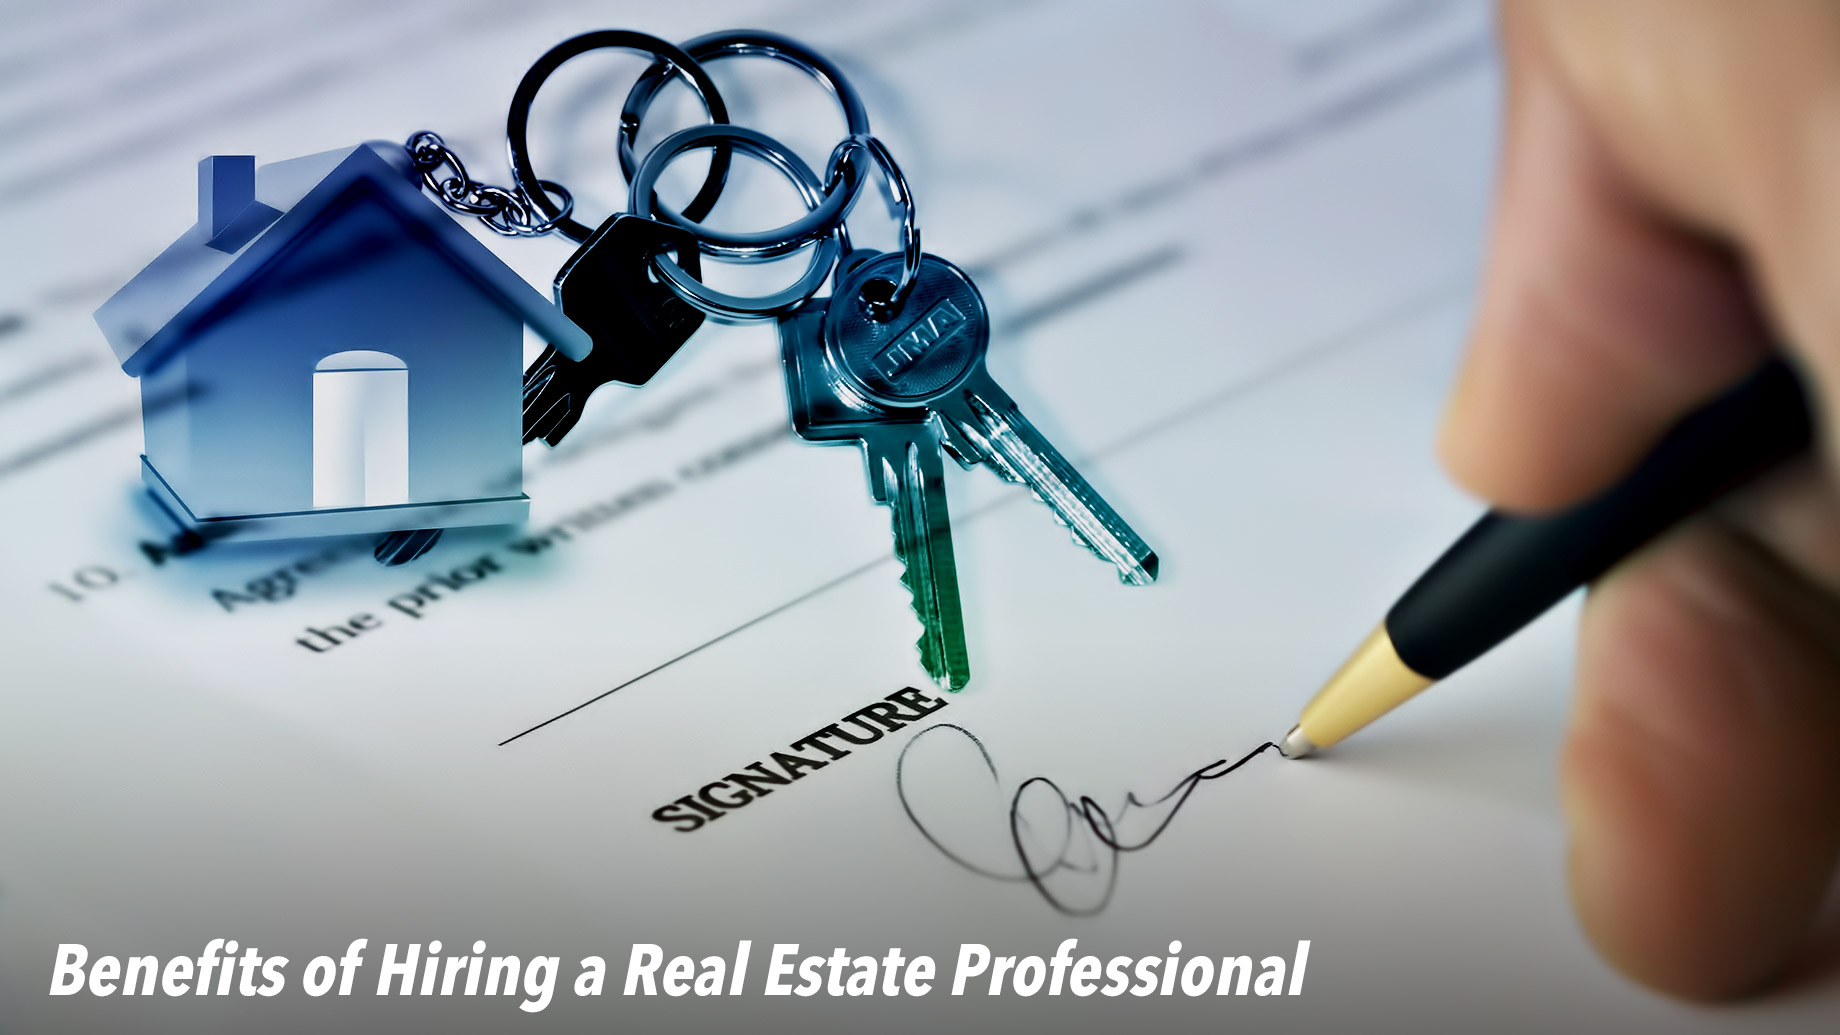 Benefits of Hiring a Real Estate Professional